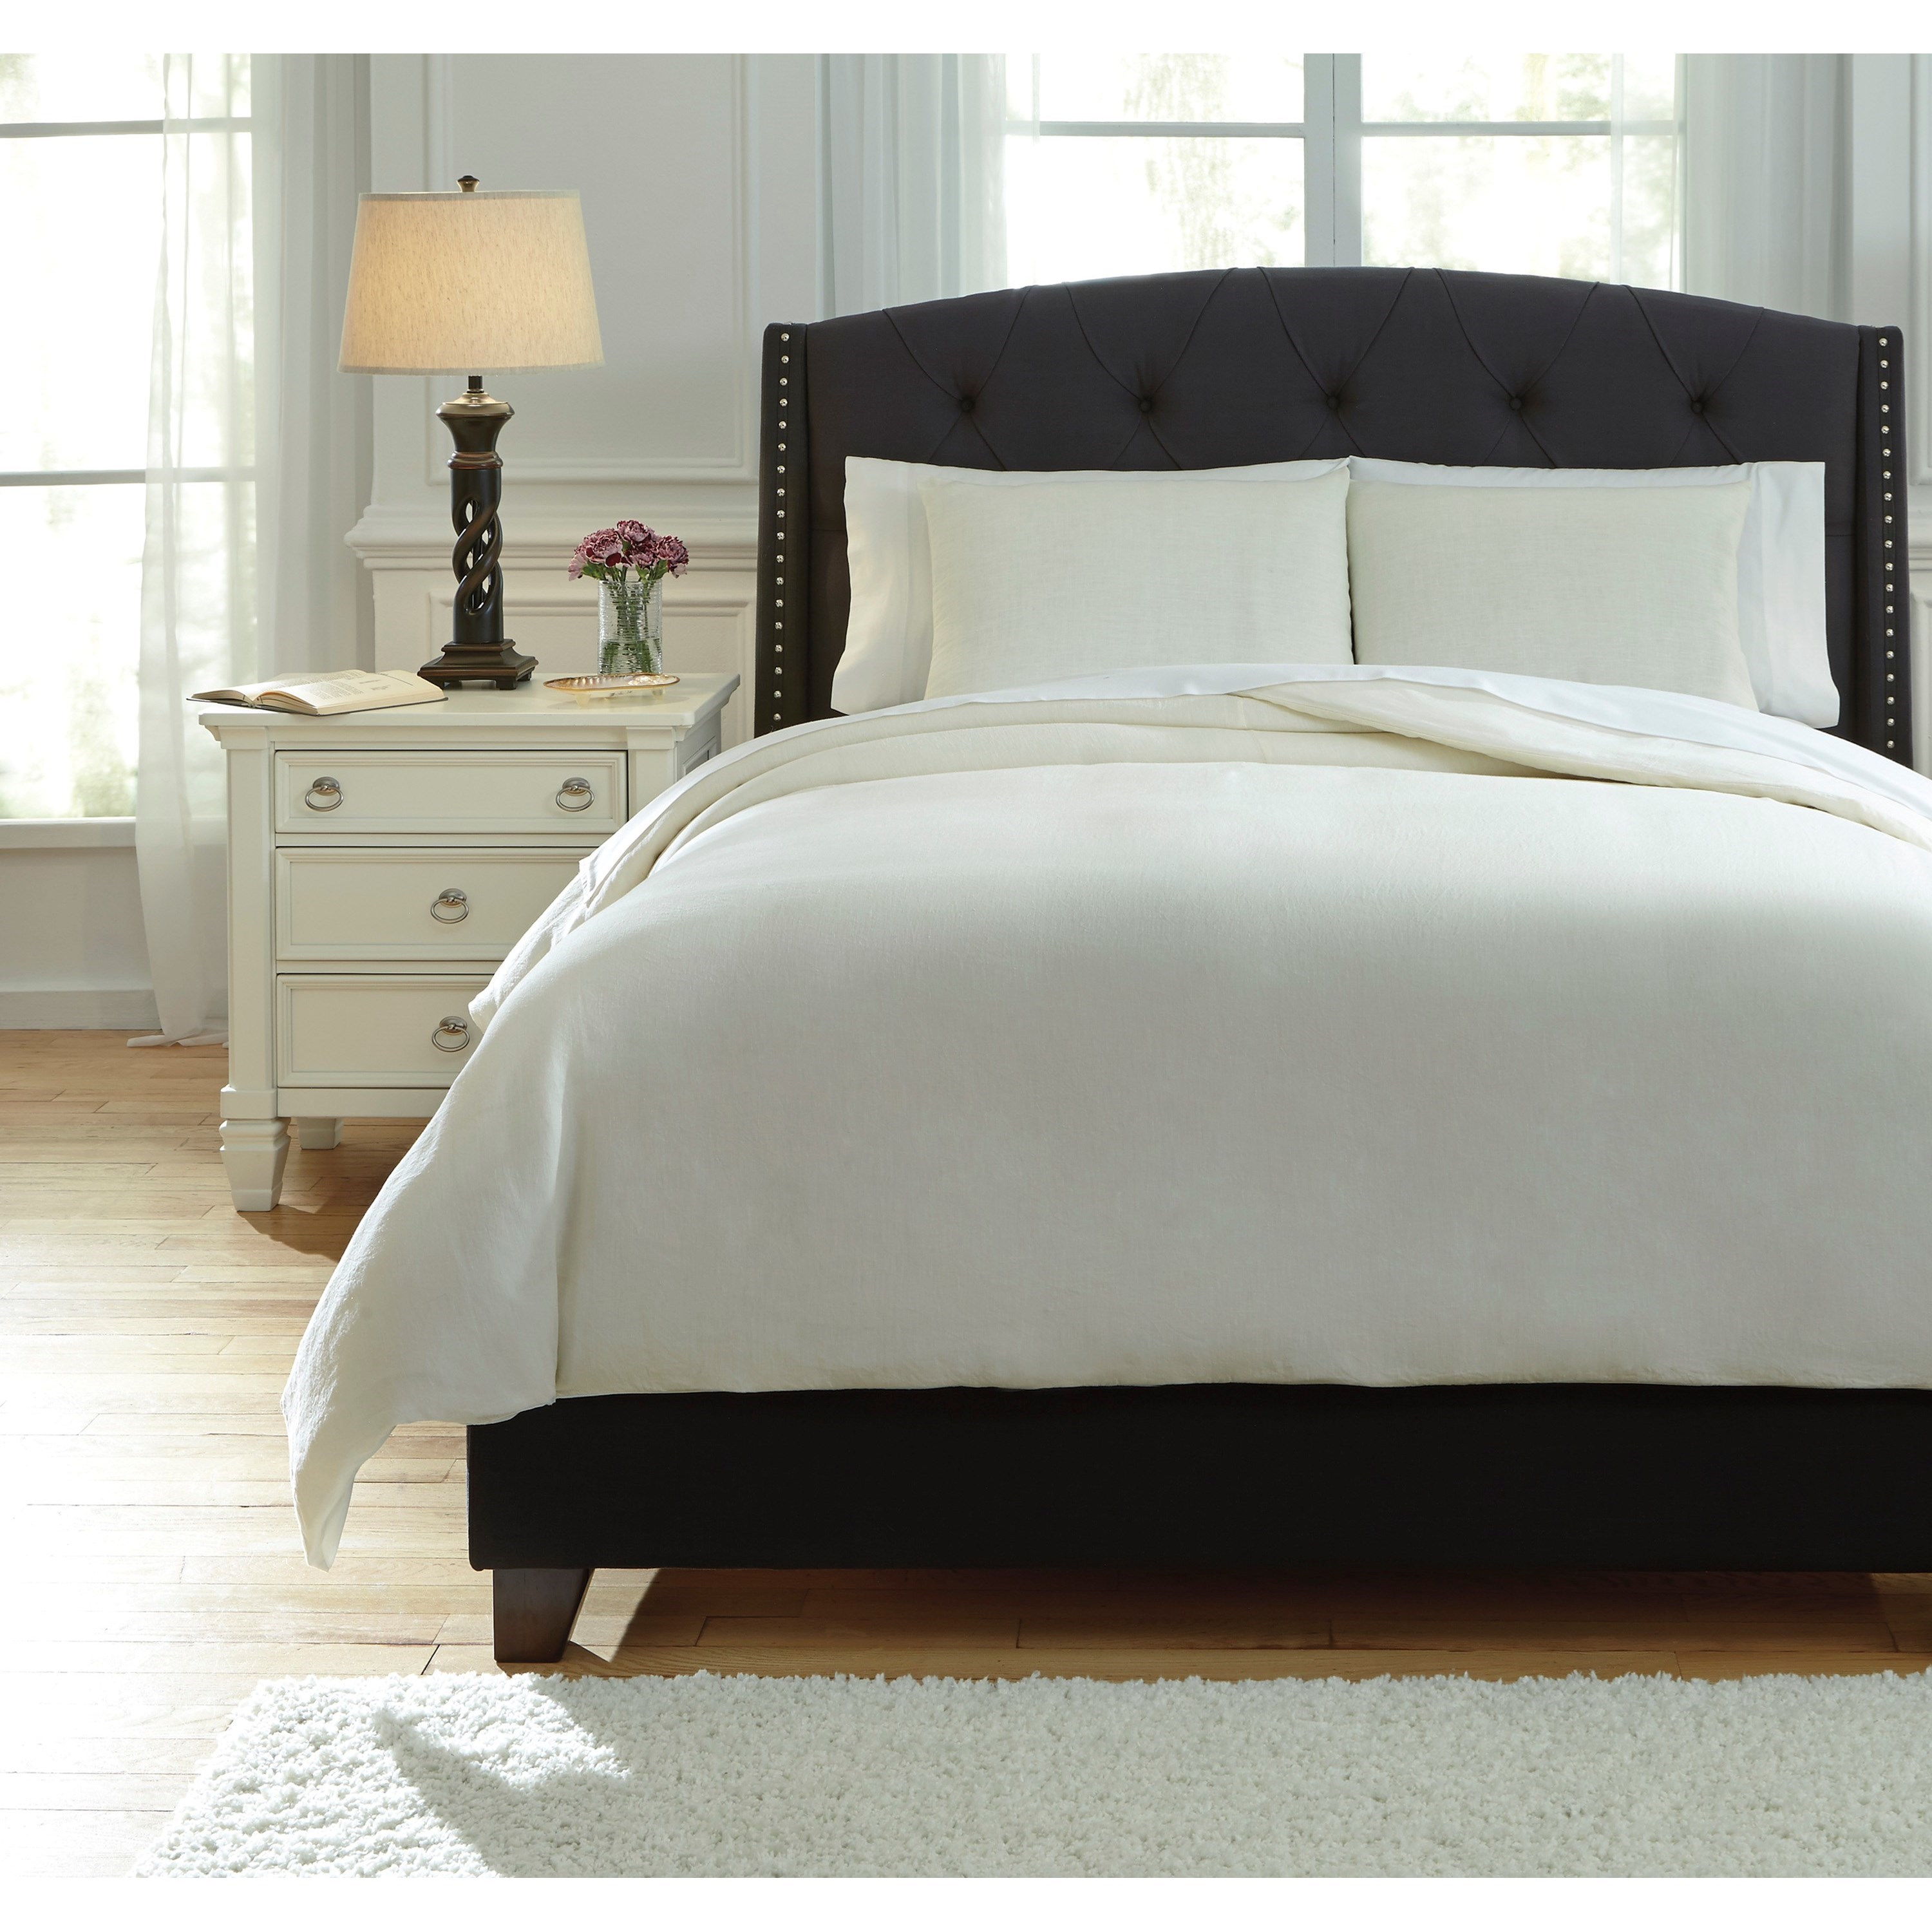 Signature Design by Ashley Bedding Sets Queen Bergen Ivory Duvet Cover Set - Item Number: Q734013Q